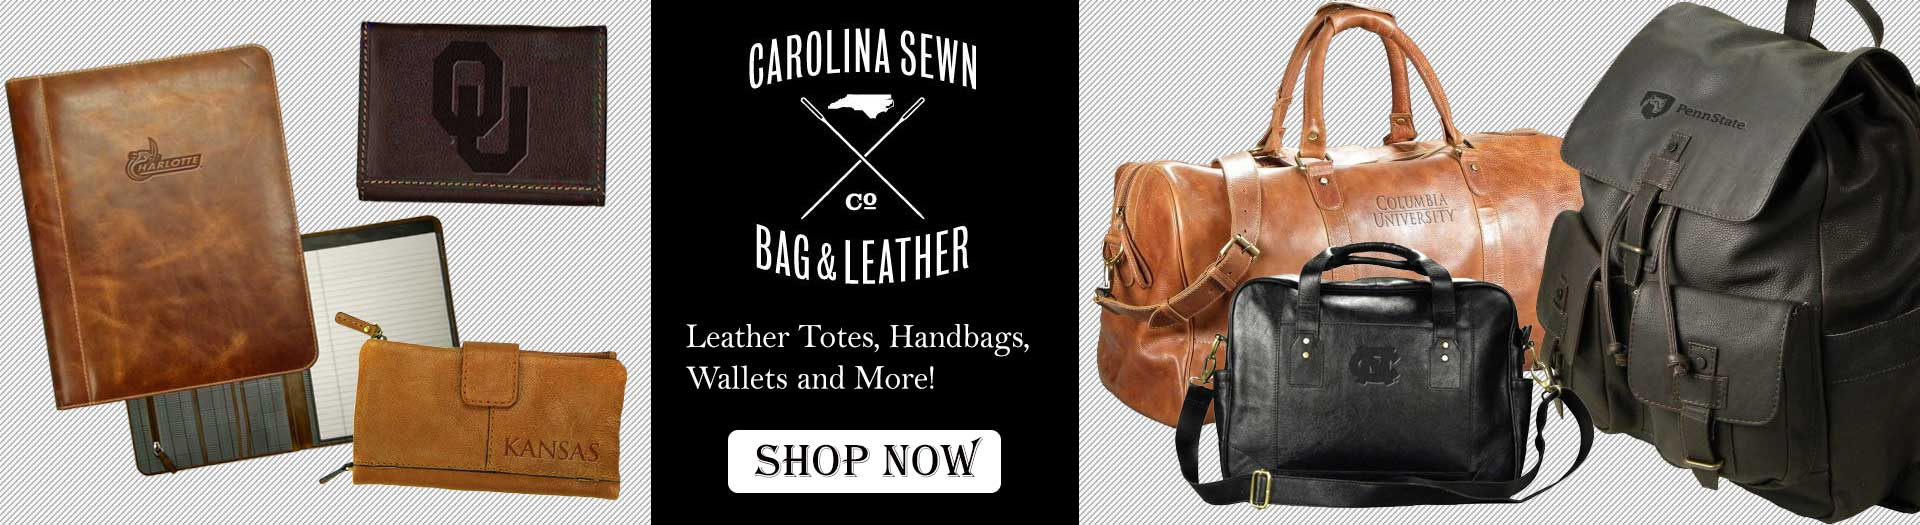 Shop Carolina Sewn Handbags and Wallets